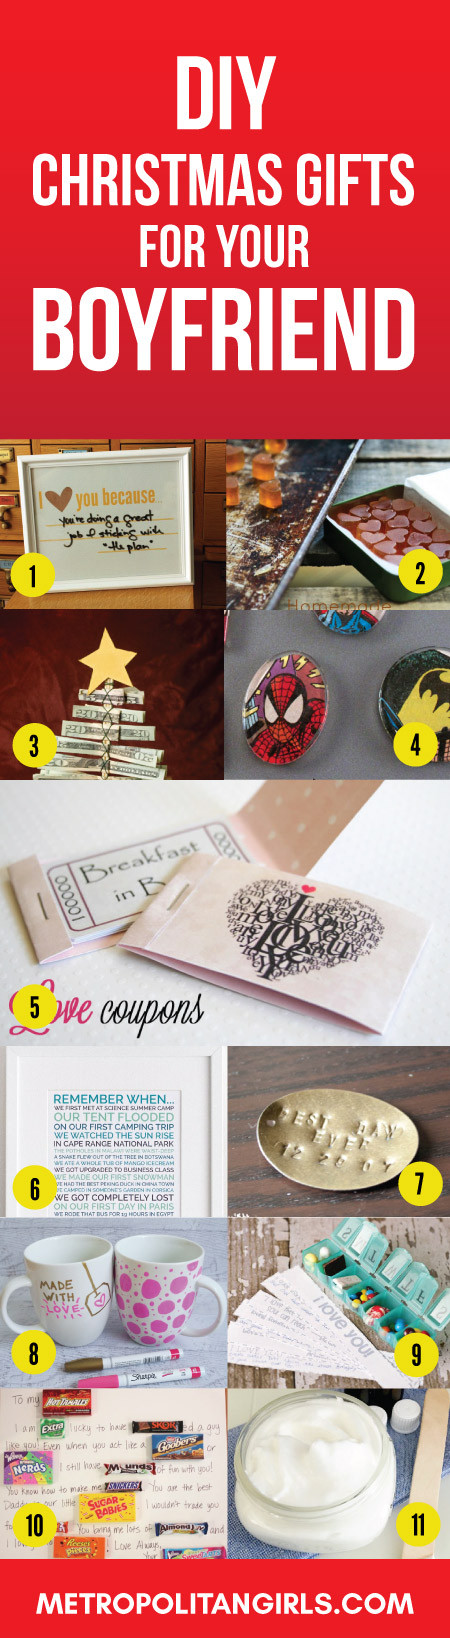 First Christmas With Boyfriend Gift Ideas  Christmas Gift Ideas for Boyfriend 2017 Metropolitan Girls